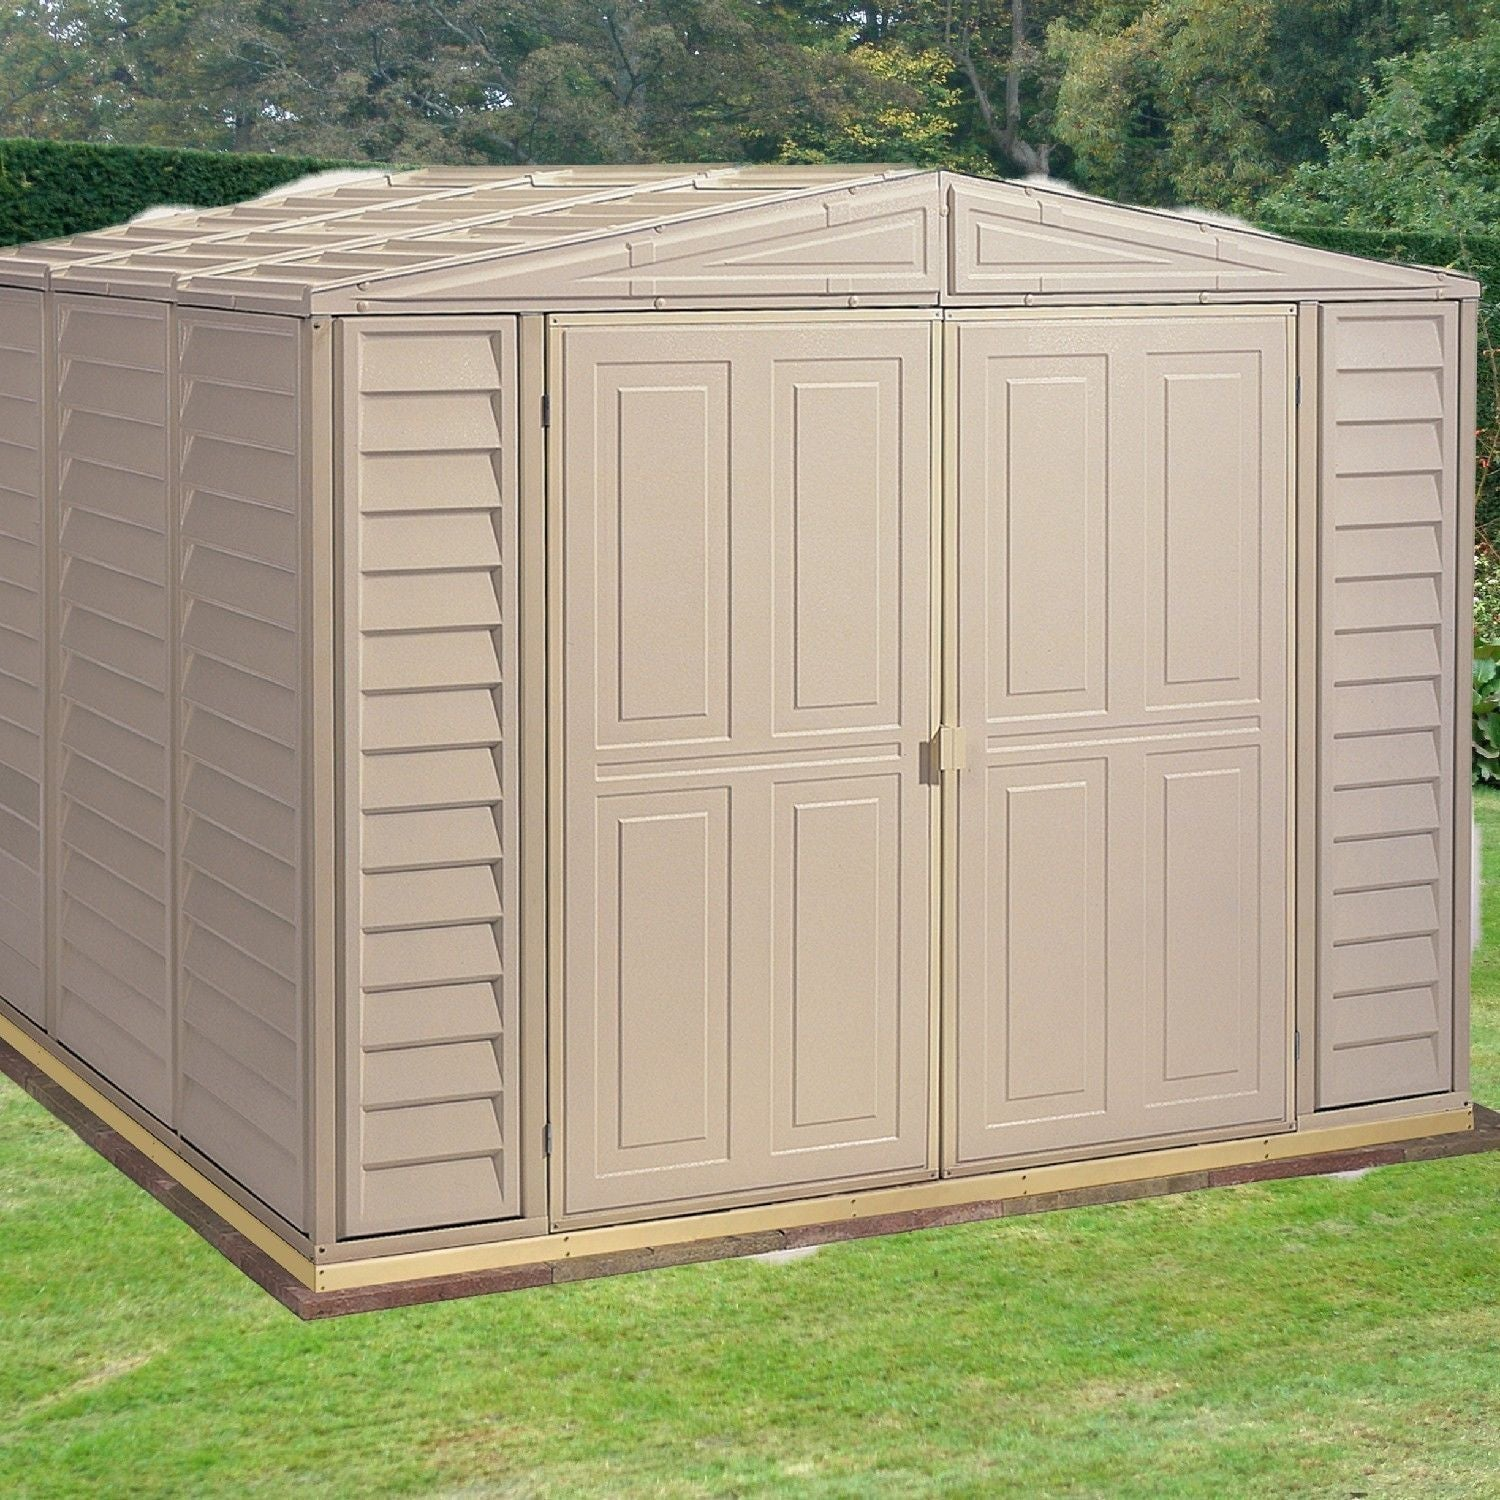 clarifications decoration garden timber wooden on us bench storage lawnscapes outdoor x store box boxes ten